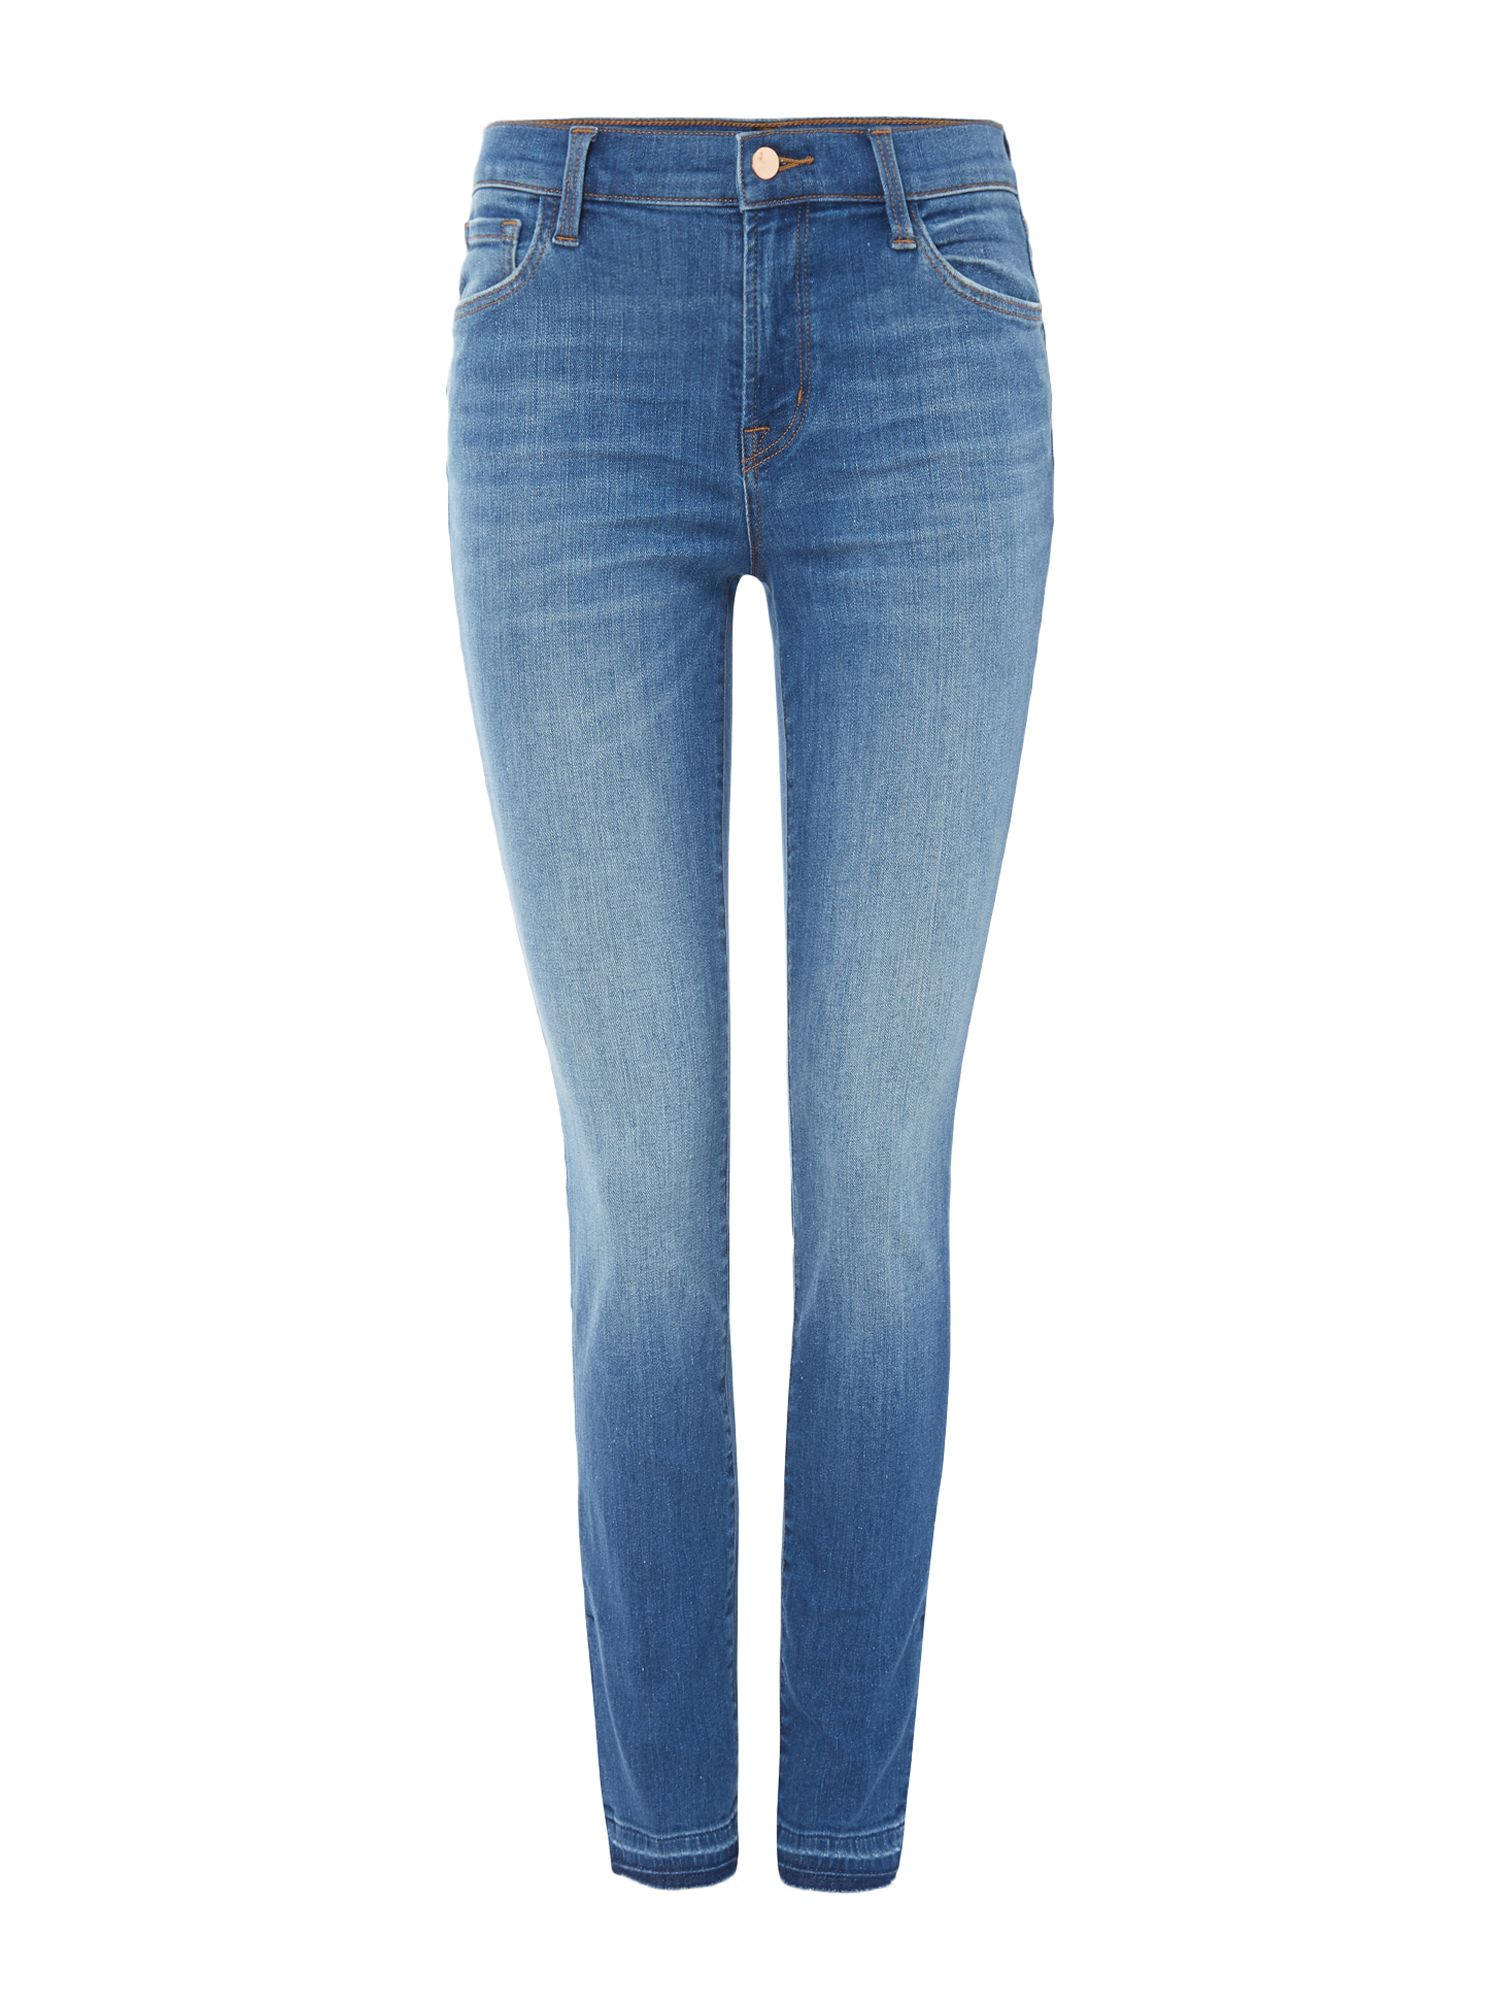 J Brand MID RISE SKINNY SIDE SLIT JEAN IN ANGELIC, Denim Light Wash